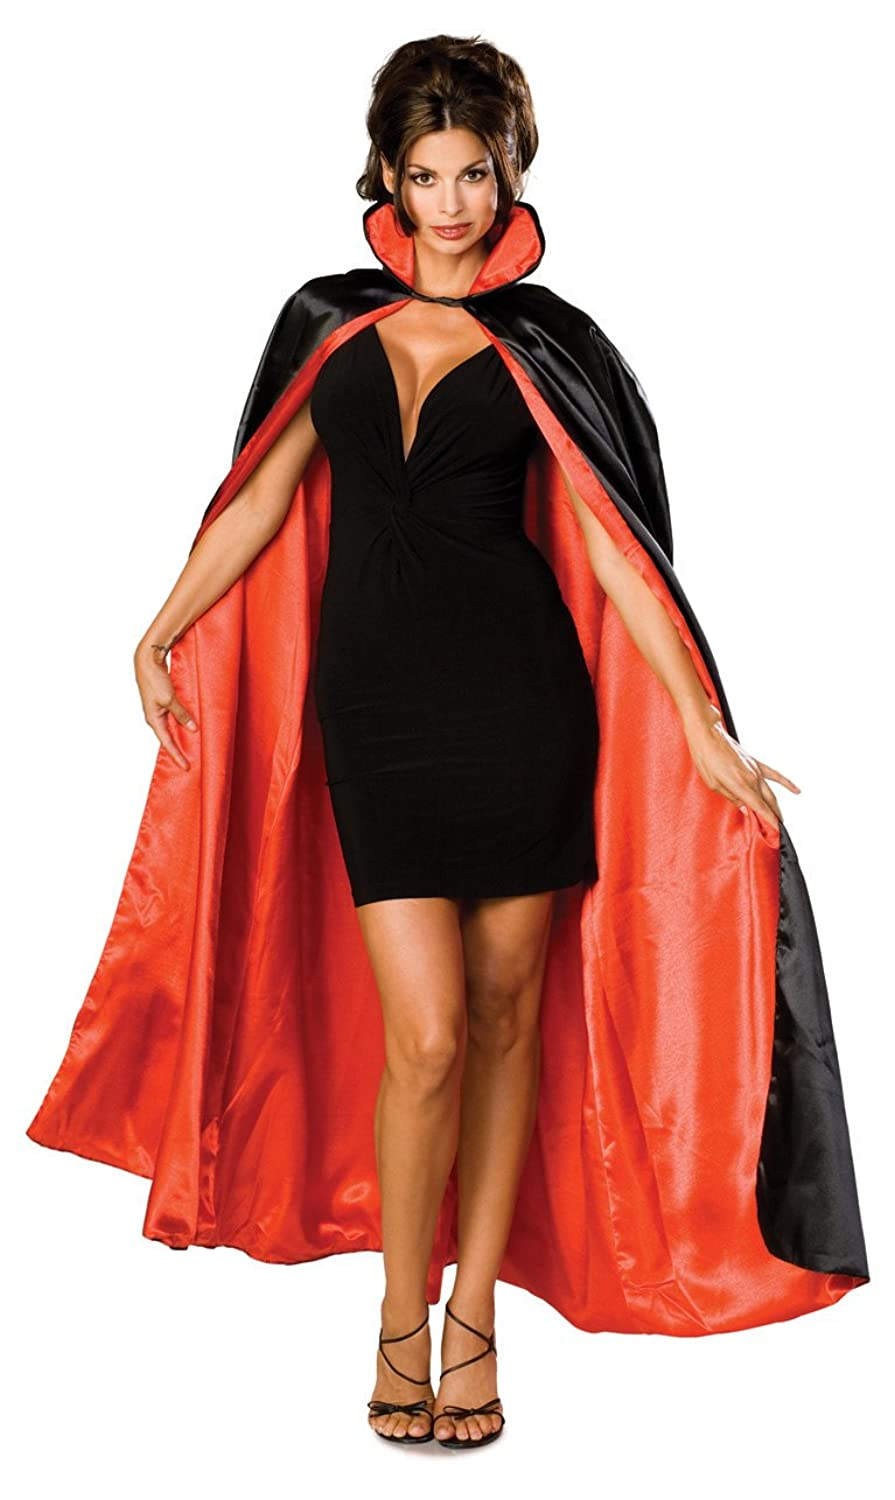 amazoncom rubies costume long satin capeblackredone size costume clothing - Halloween Costumes With A Cape